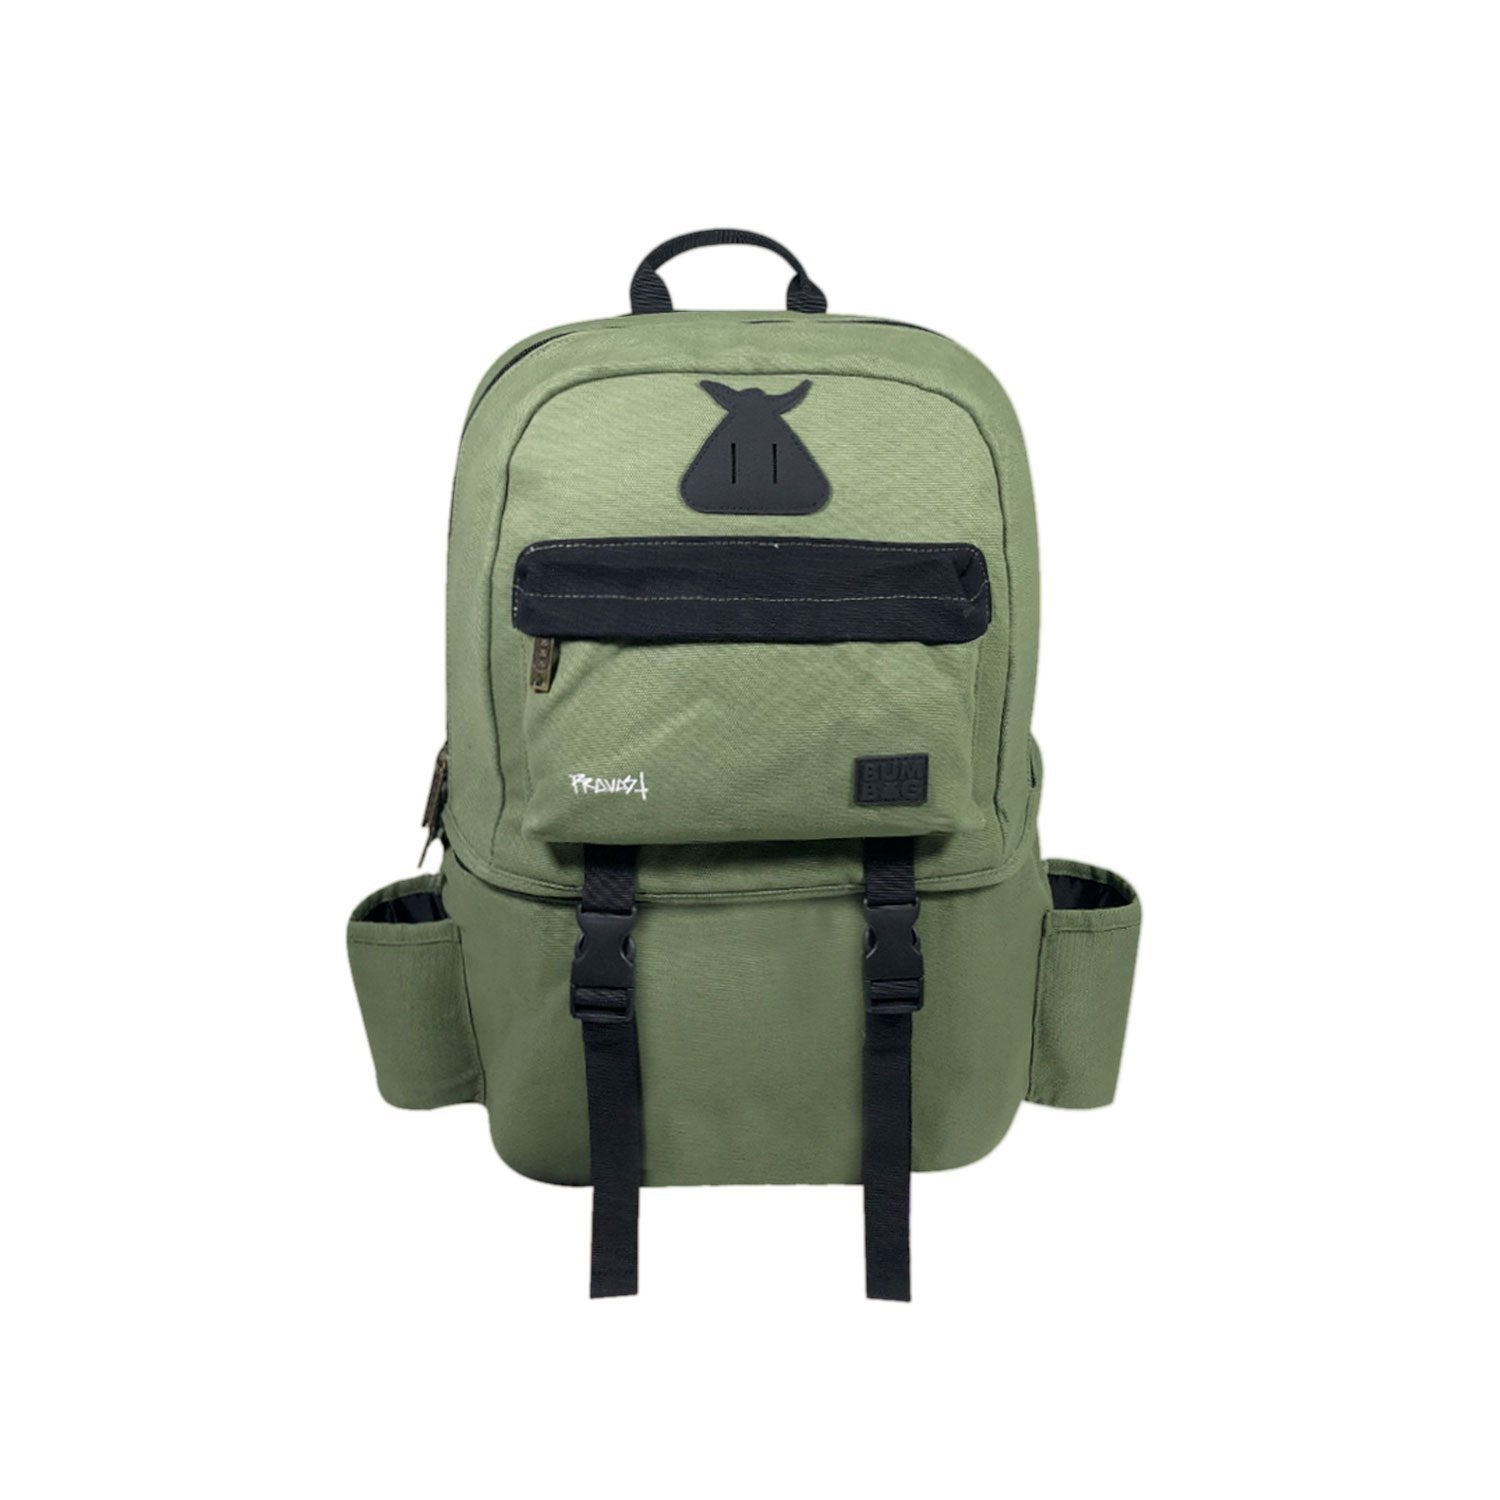 Bumbag Scout Backpack - Provost Product Photo #1